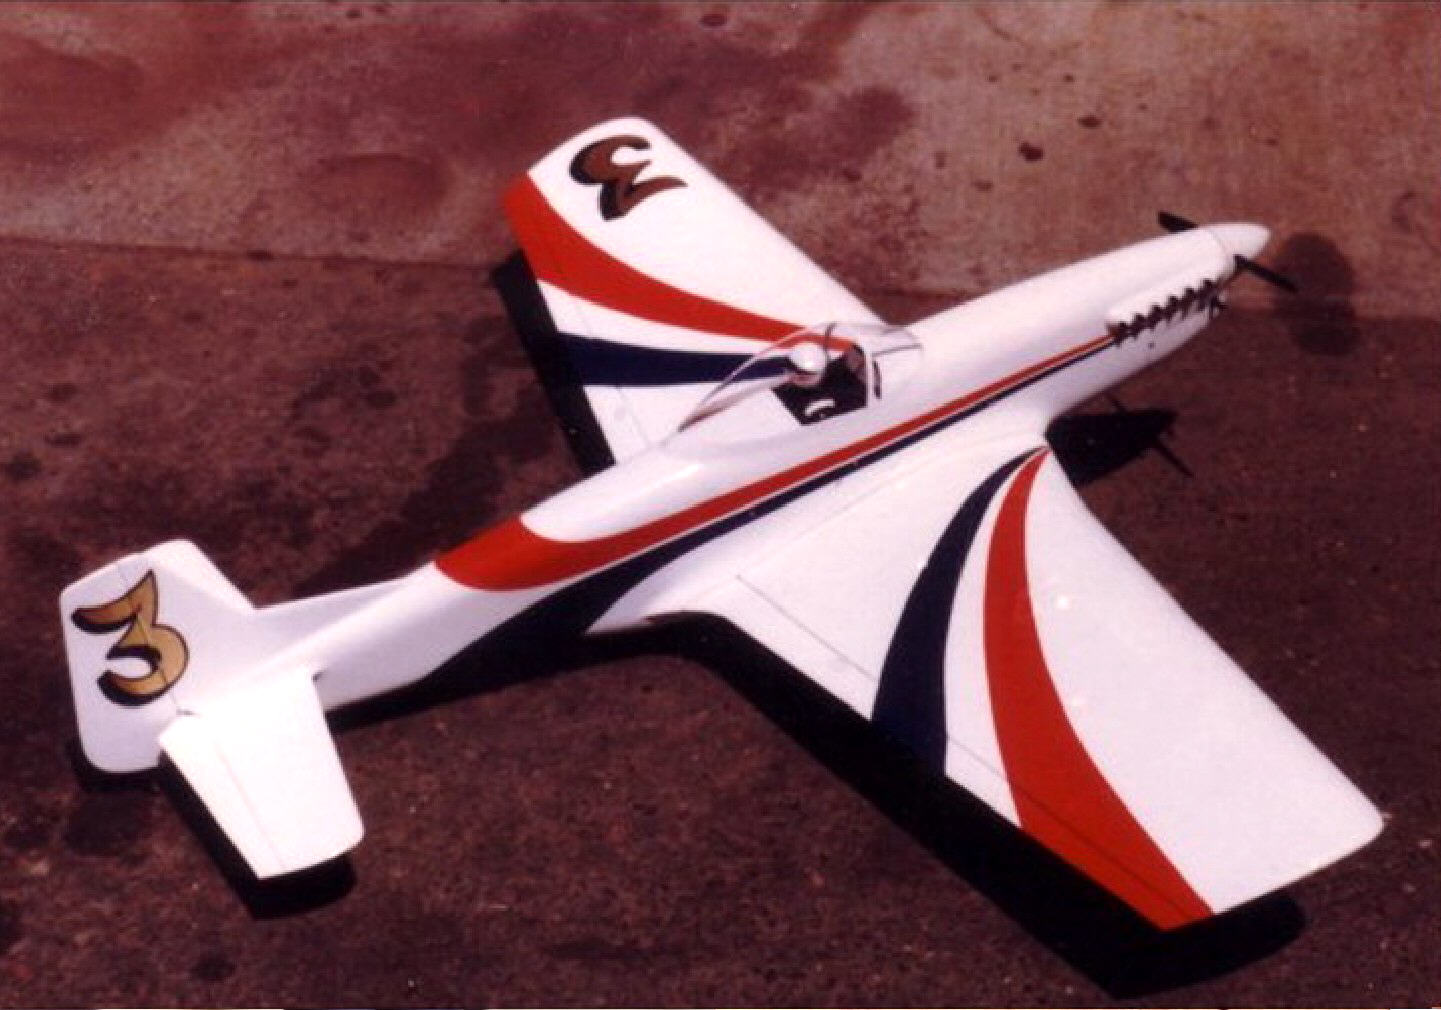 P 51 Mustang Brotherhood Page 29 Rcu Forums Being In To Radio Control Since The Mid 70 S When I Went Rc 70s Shortly Made A Sport Model Of They Had Fiberglass Fuselages And Used Mechanical Retracts